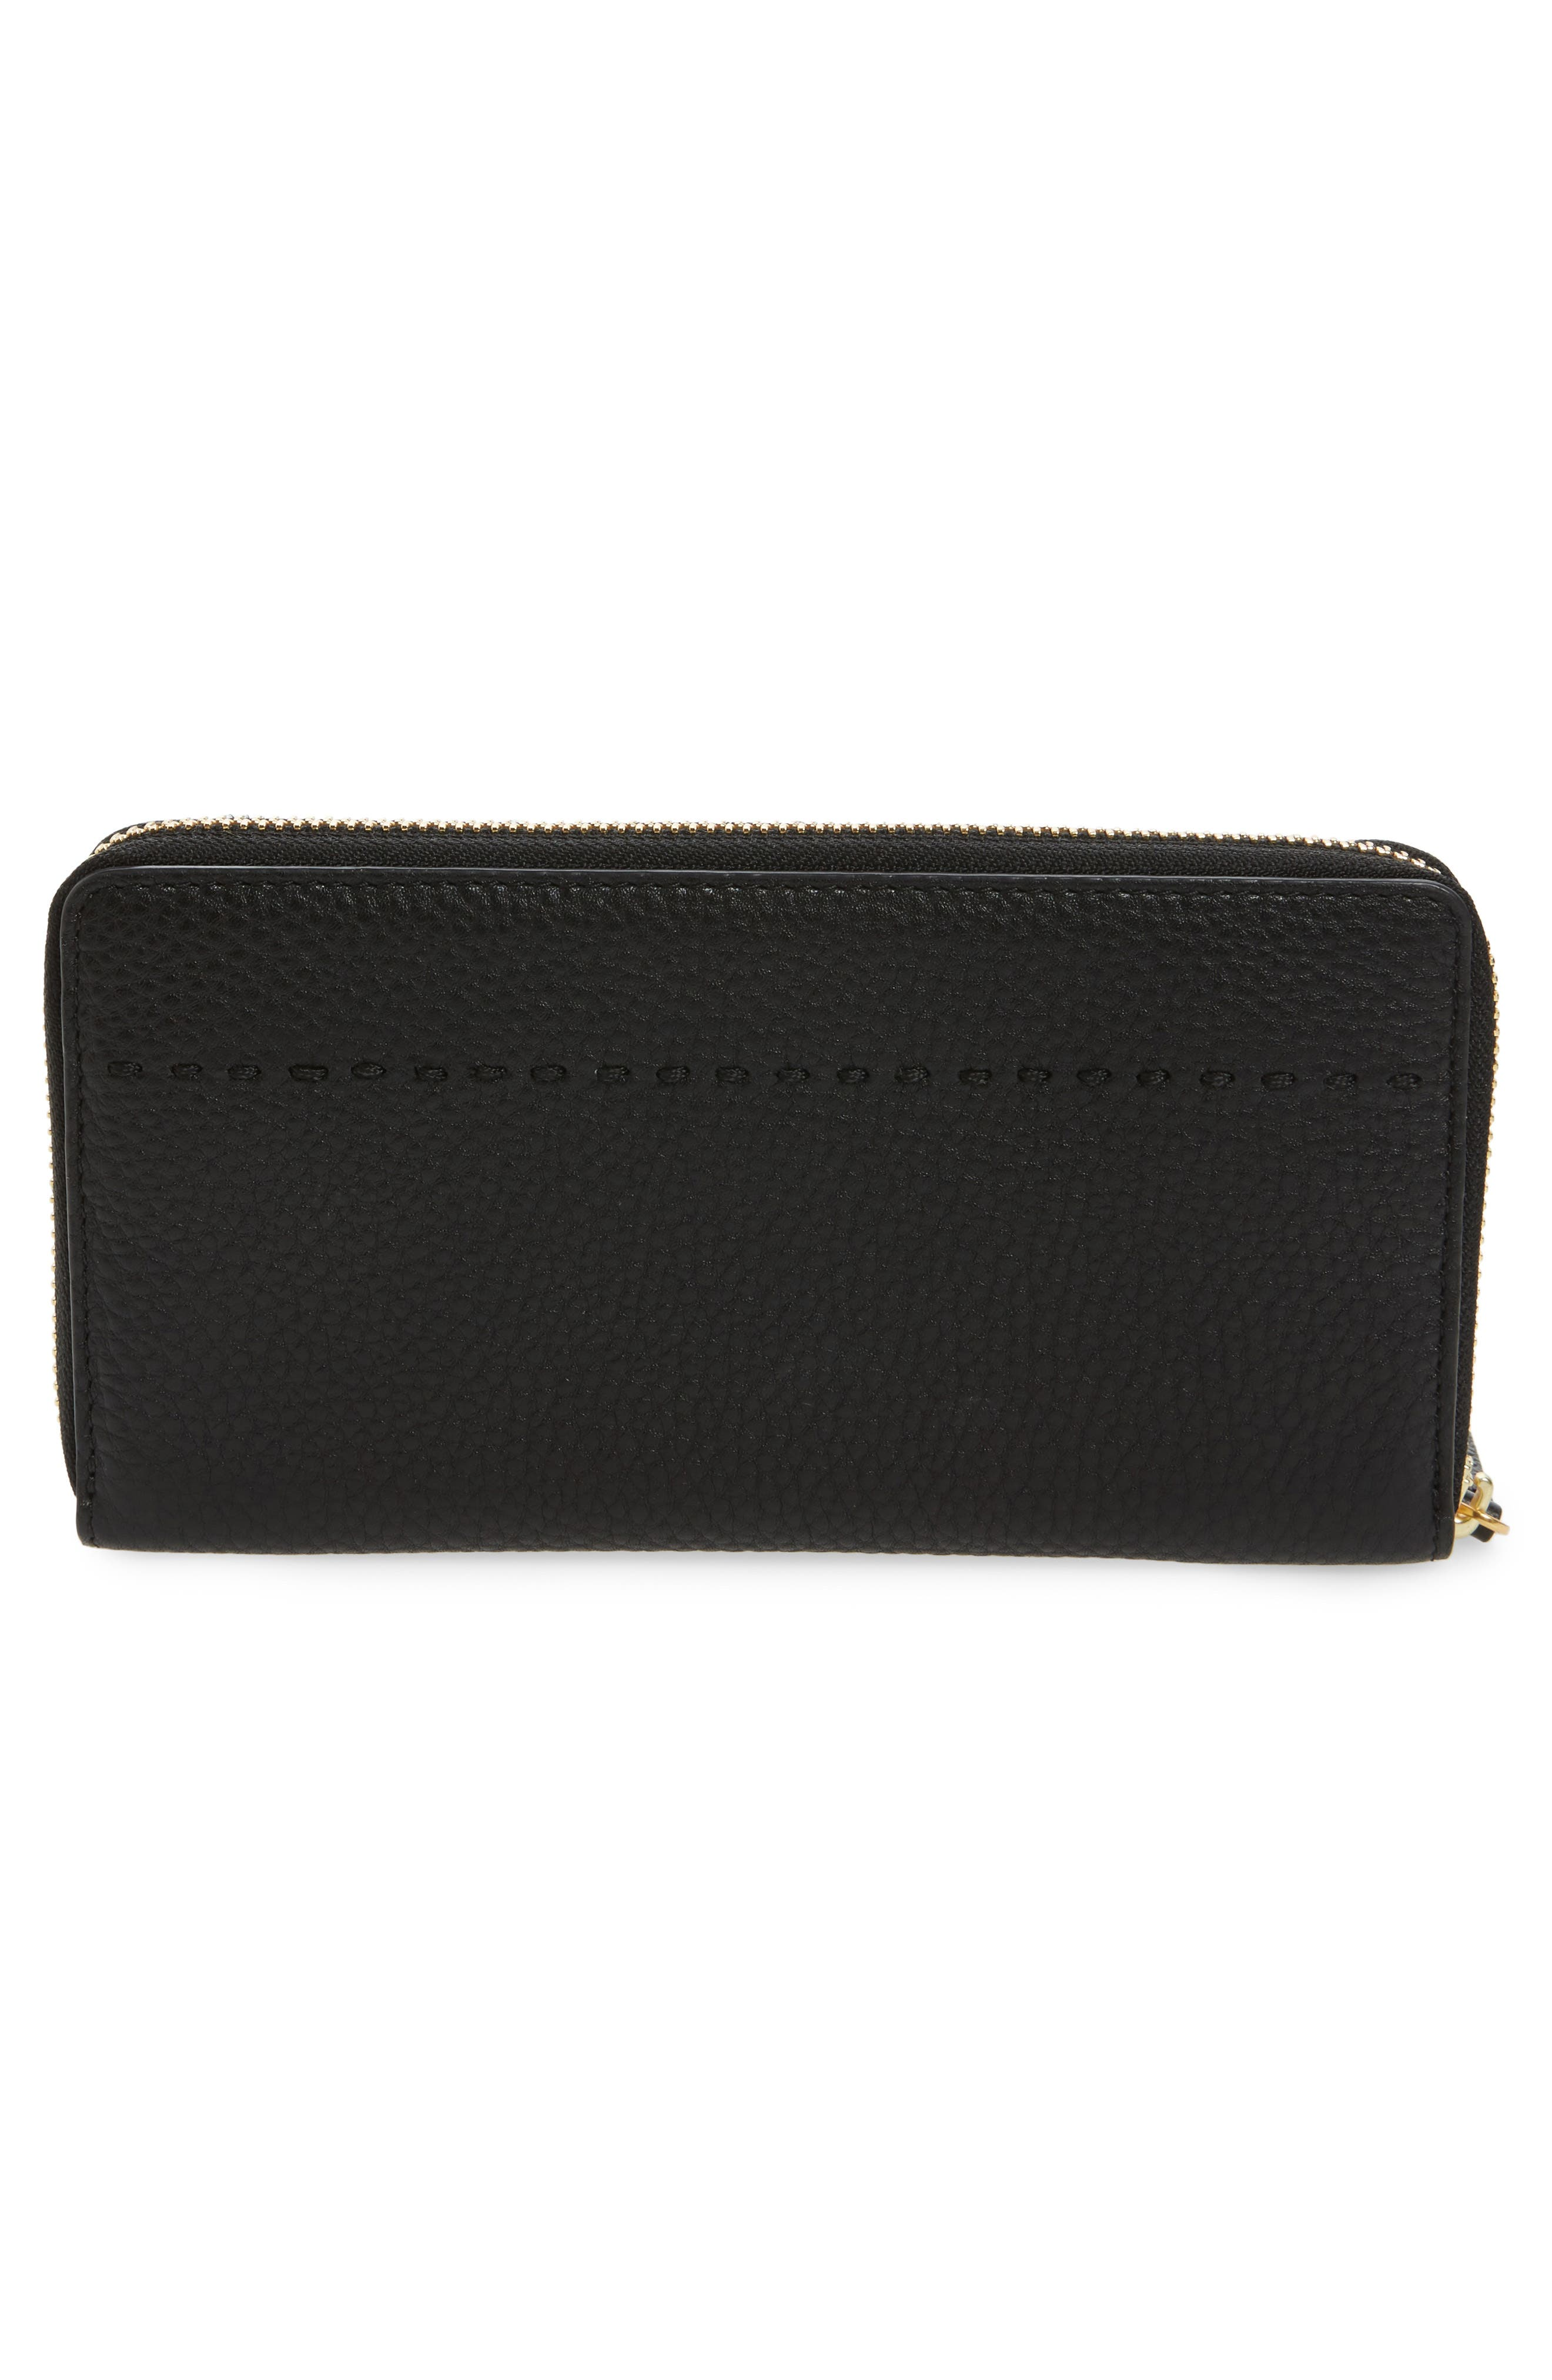 McGraw Leather Continental Zip Wallet,                             Alternate thumbnail 3, color,                             BLACK